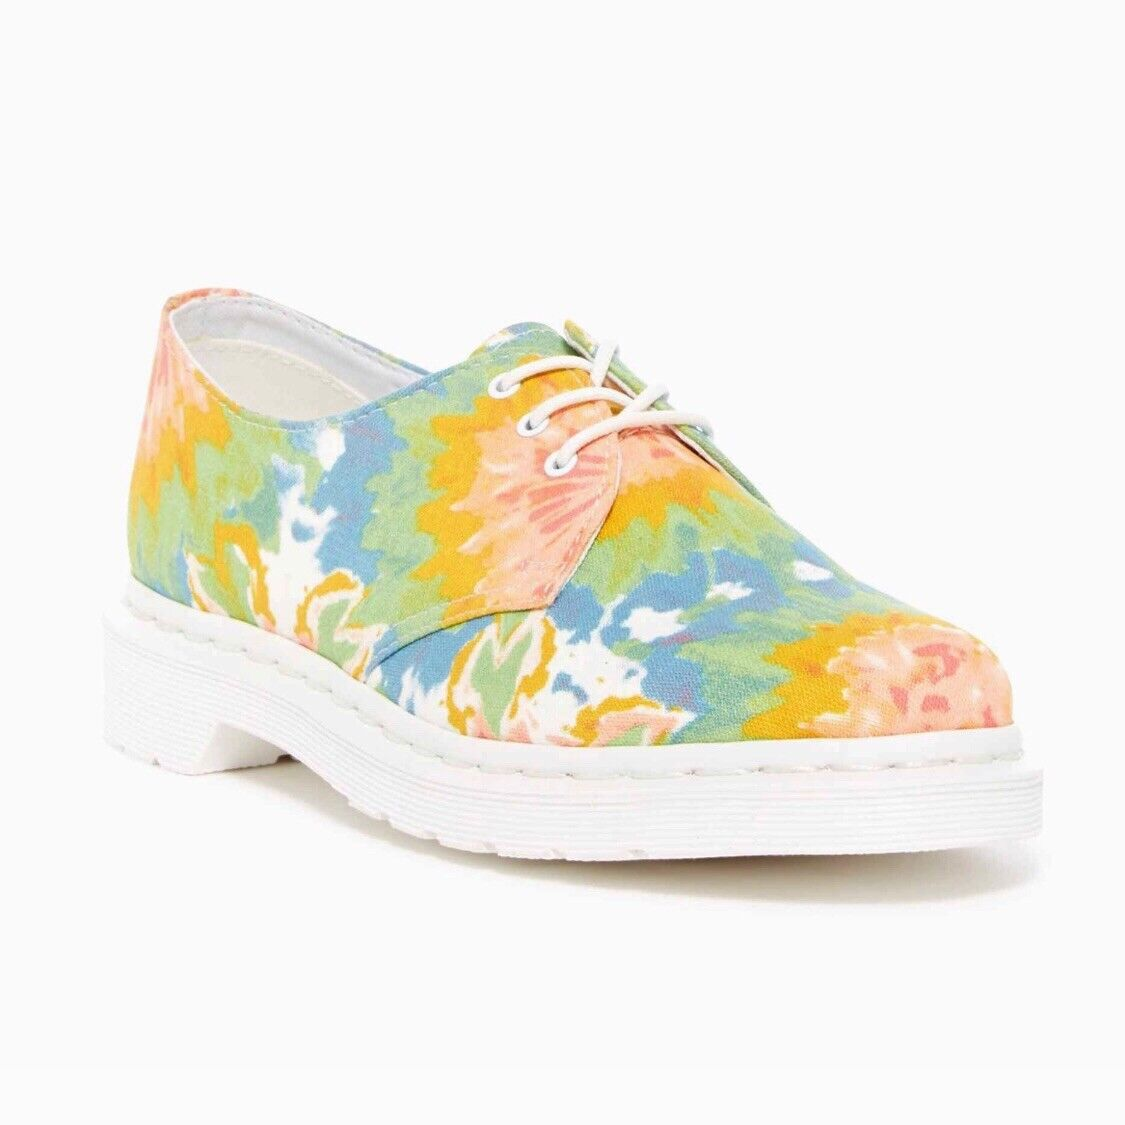 Dr. Martens Lester Tie-Tye Canvas Derby Sneaker Woman shoes Size 9 New NWT